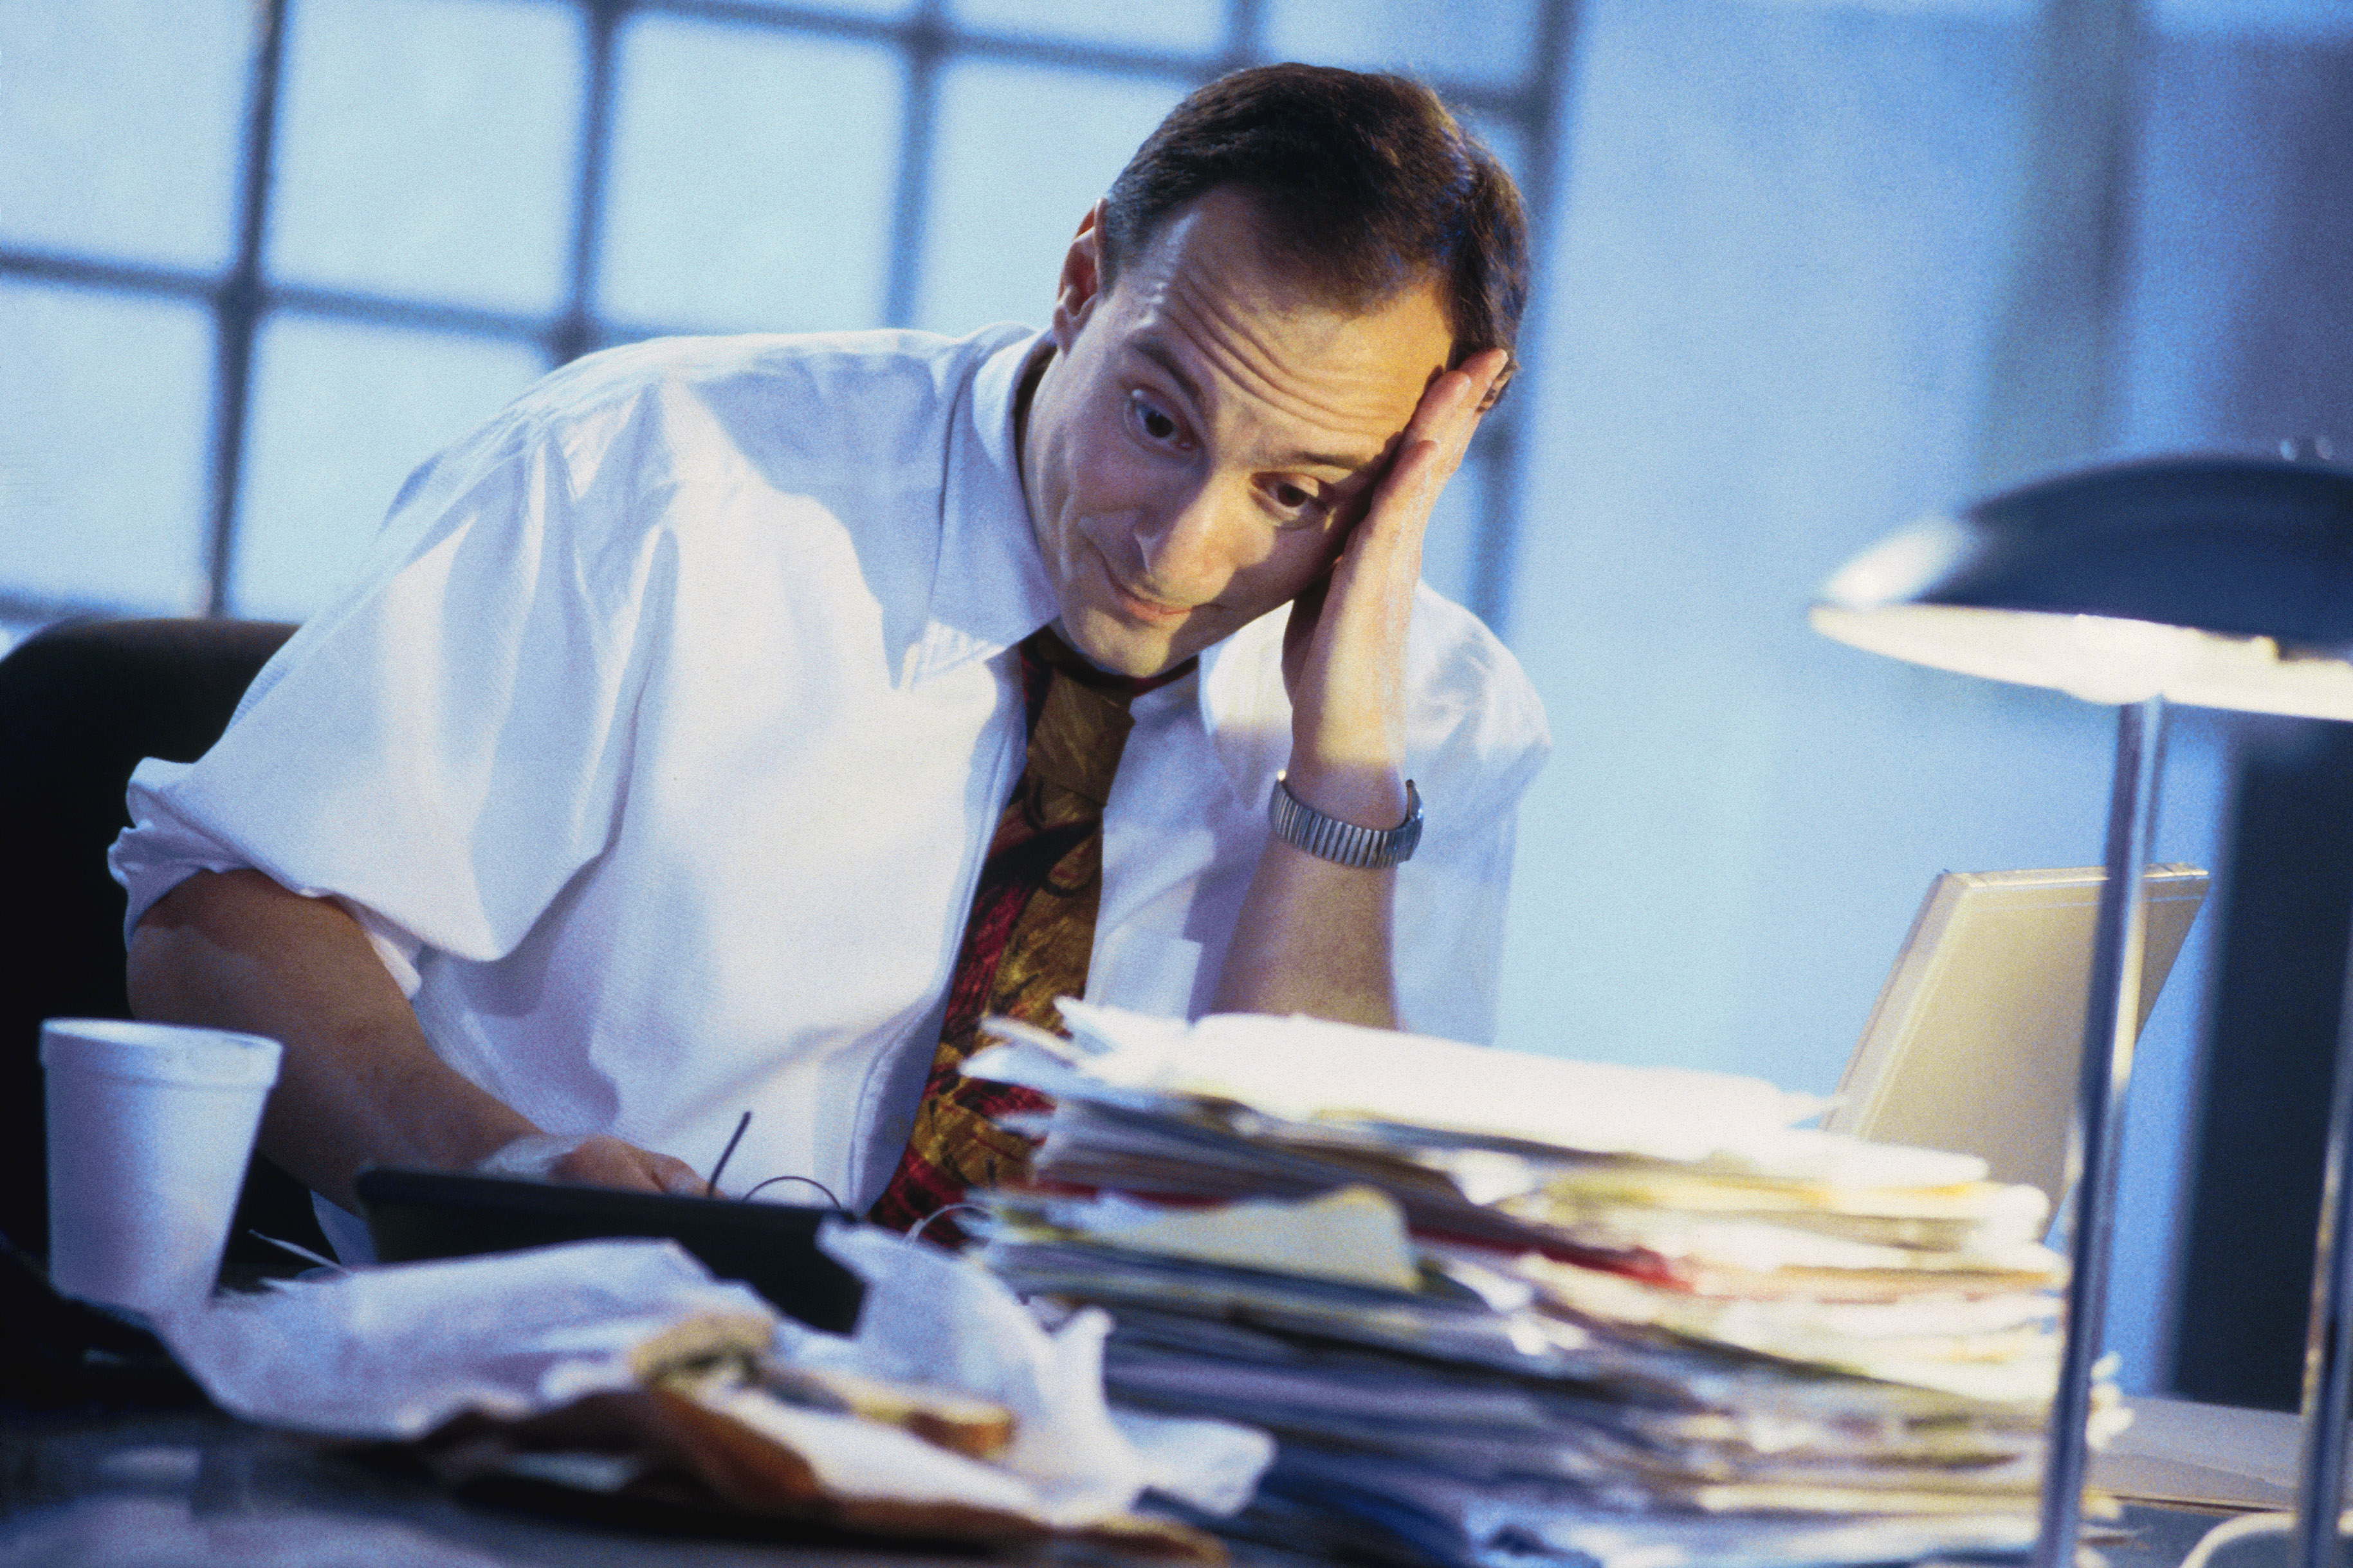 how to handle work in high pressure situations